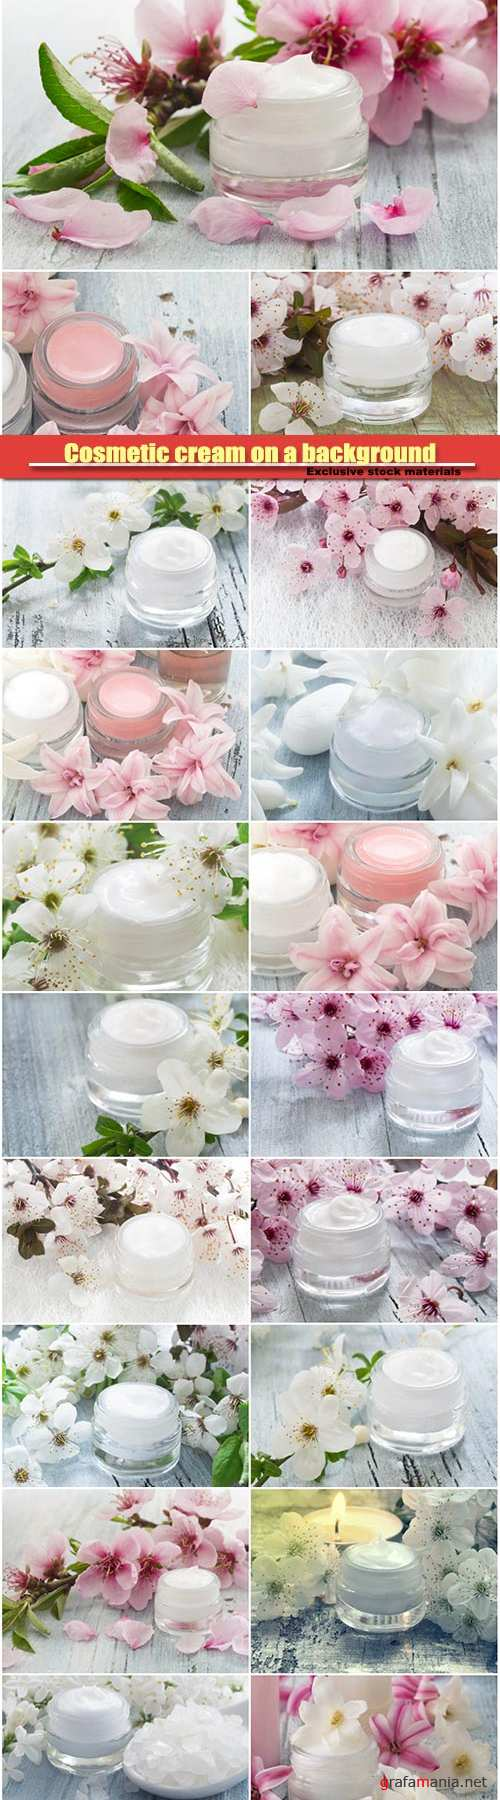 Cosmetic cream on a background of spring flowers